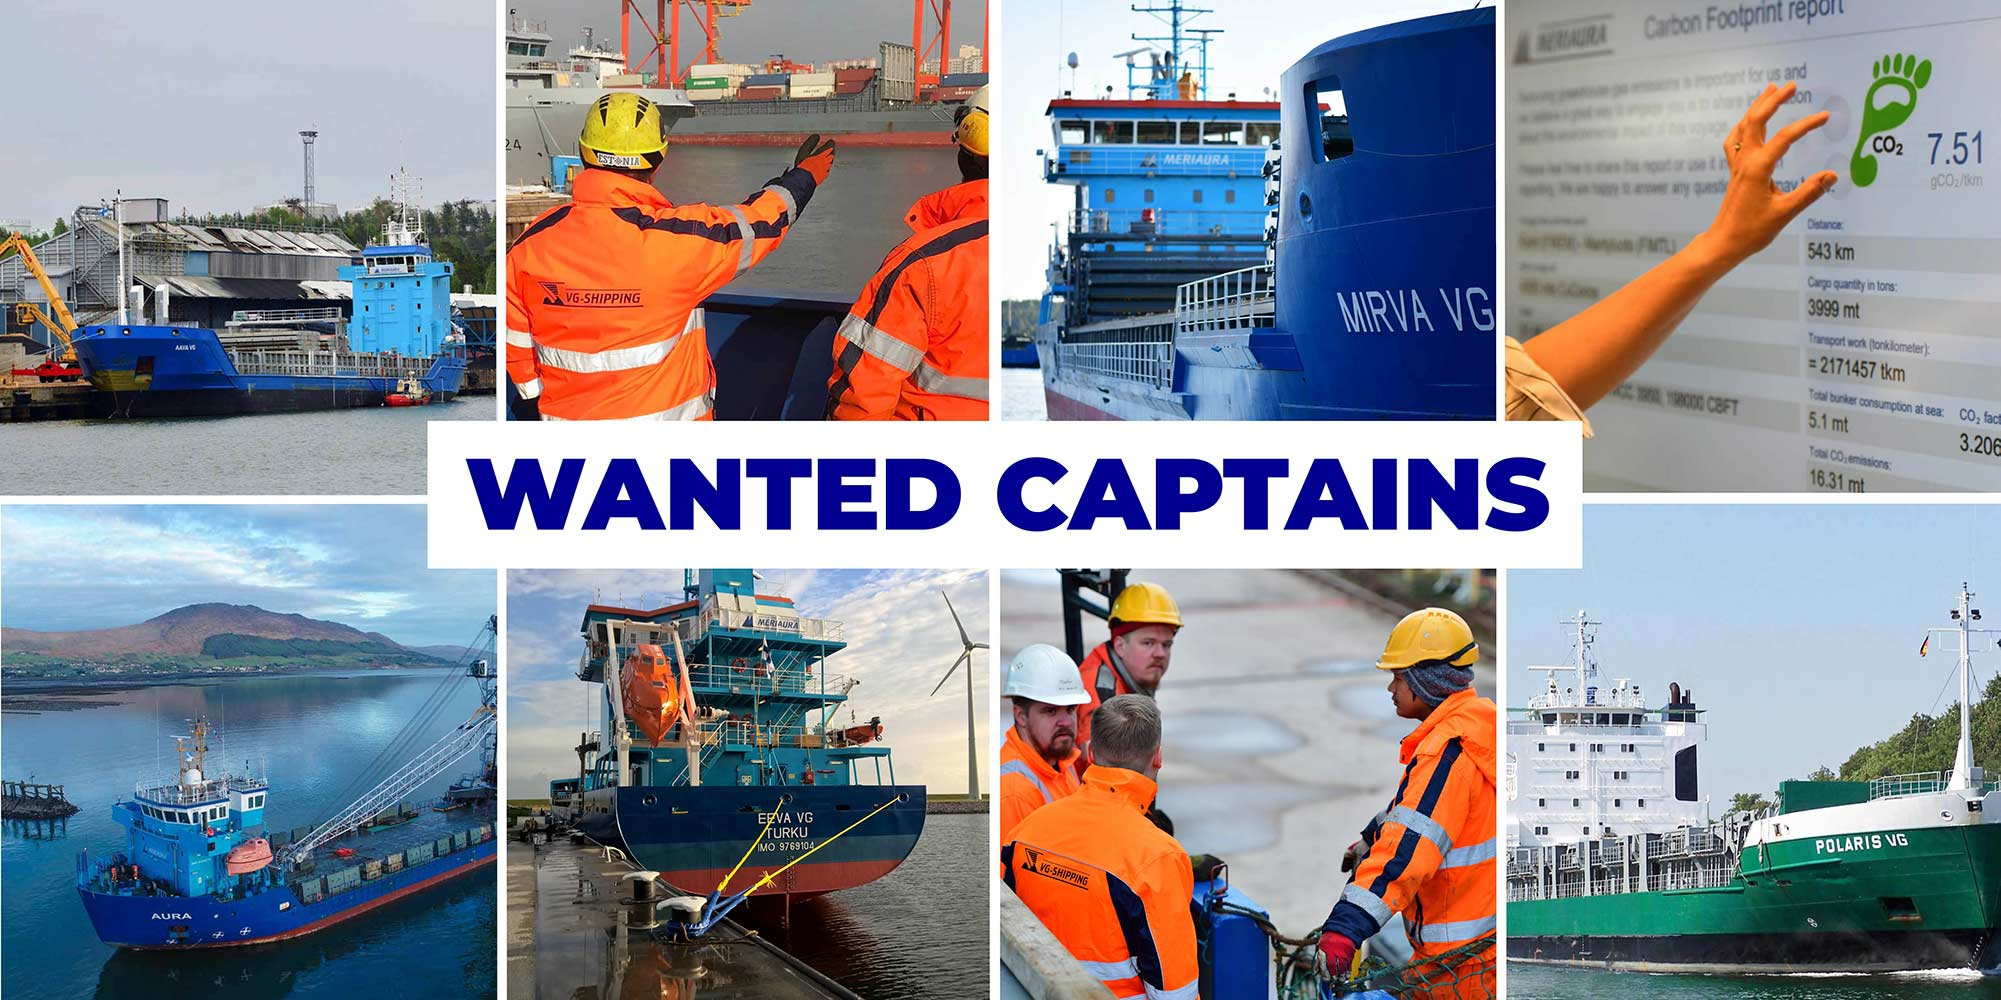 Captains_Wanted_Ålands_Sjöfart